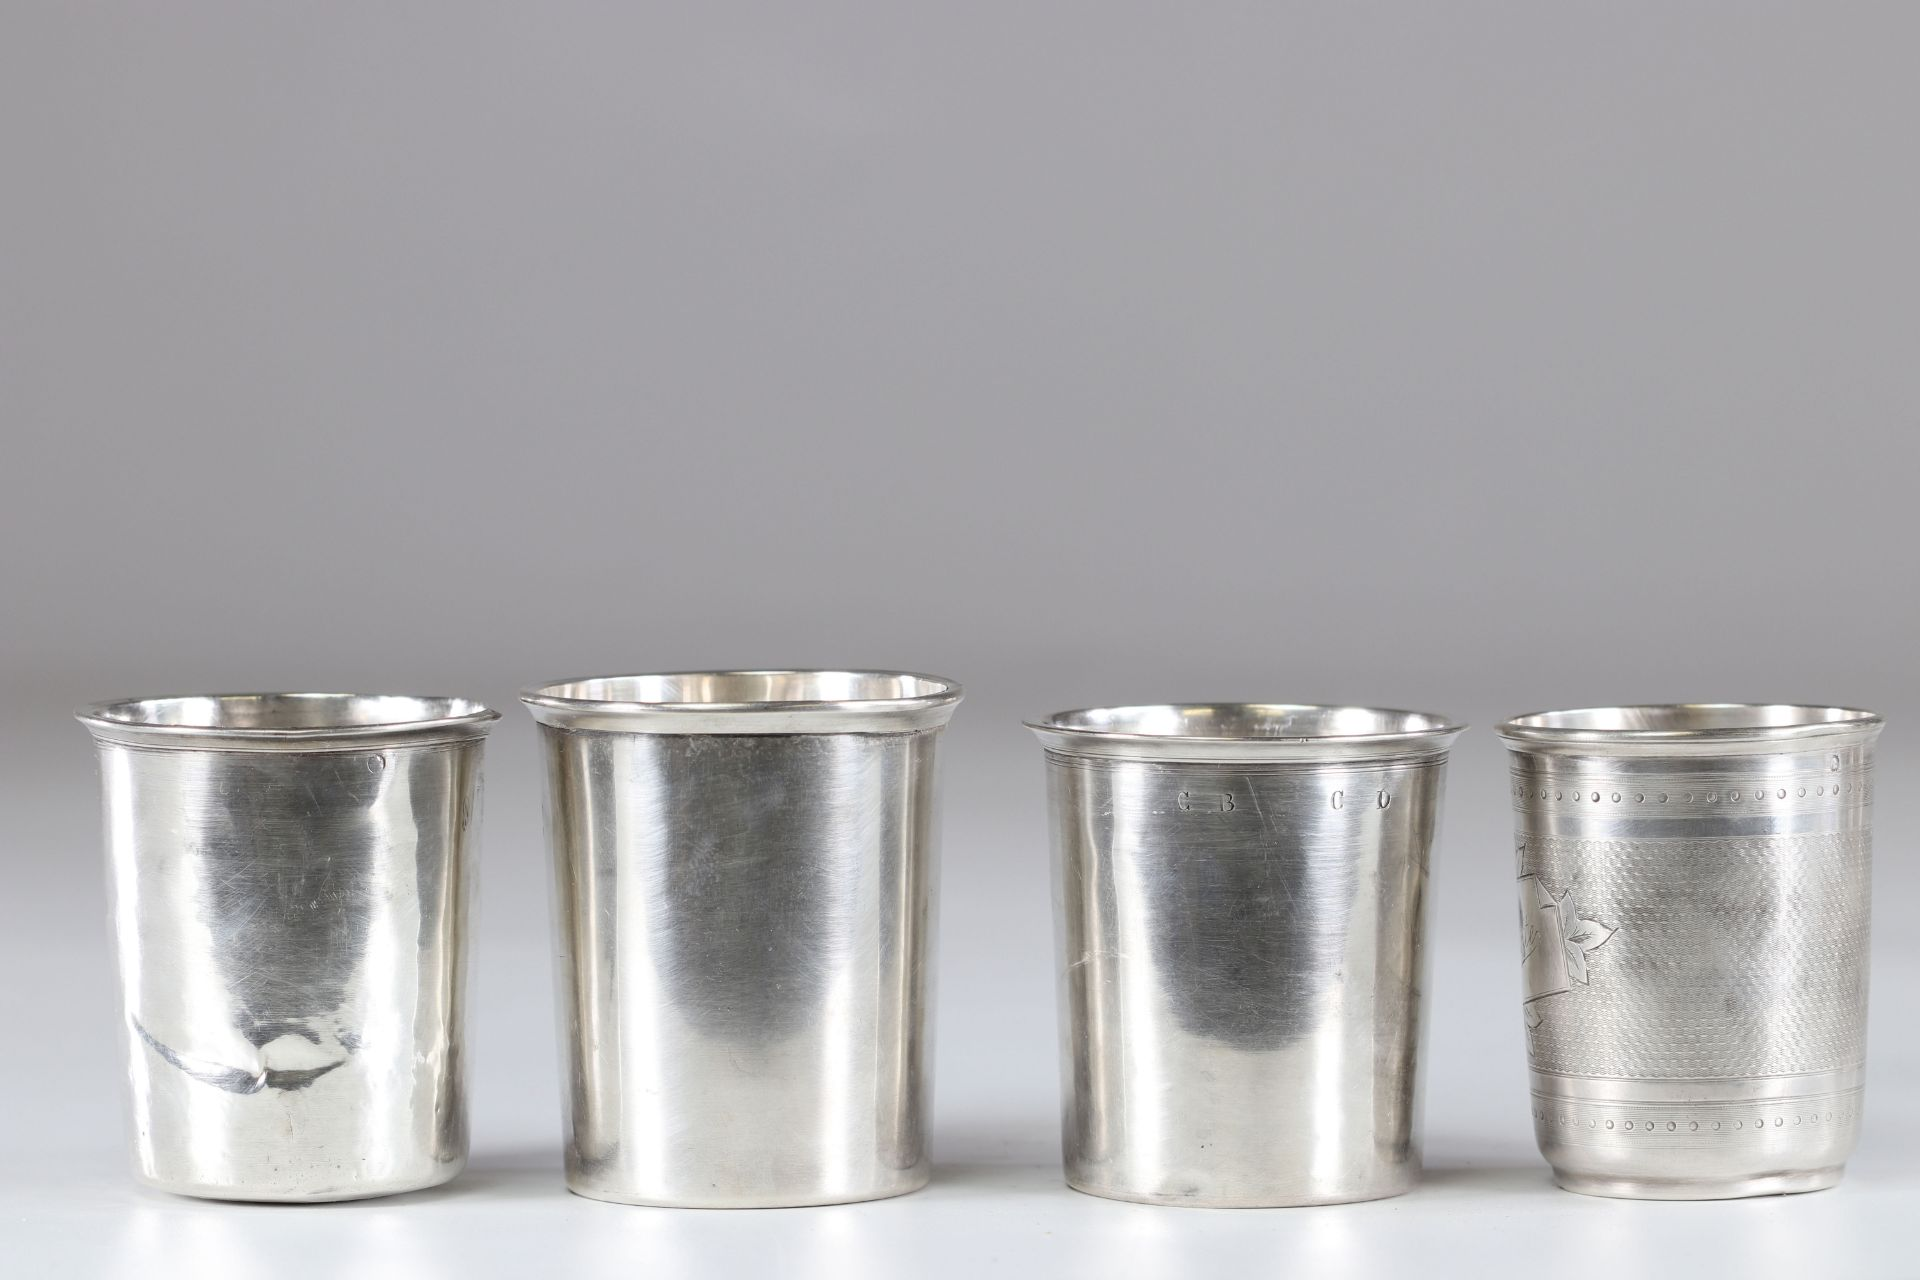 Timpani (15) in solid silver various hallmarks - Image 4 of 4